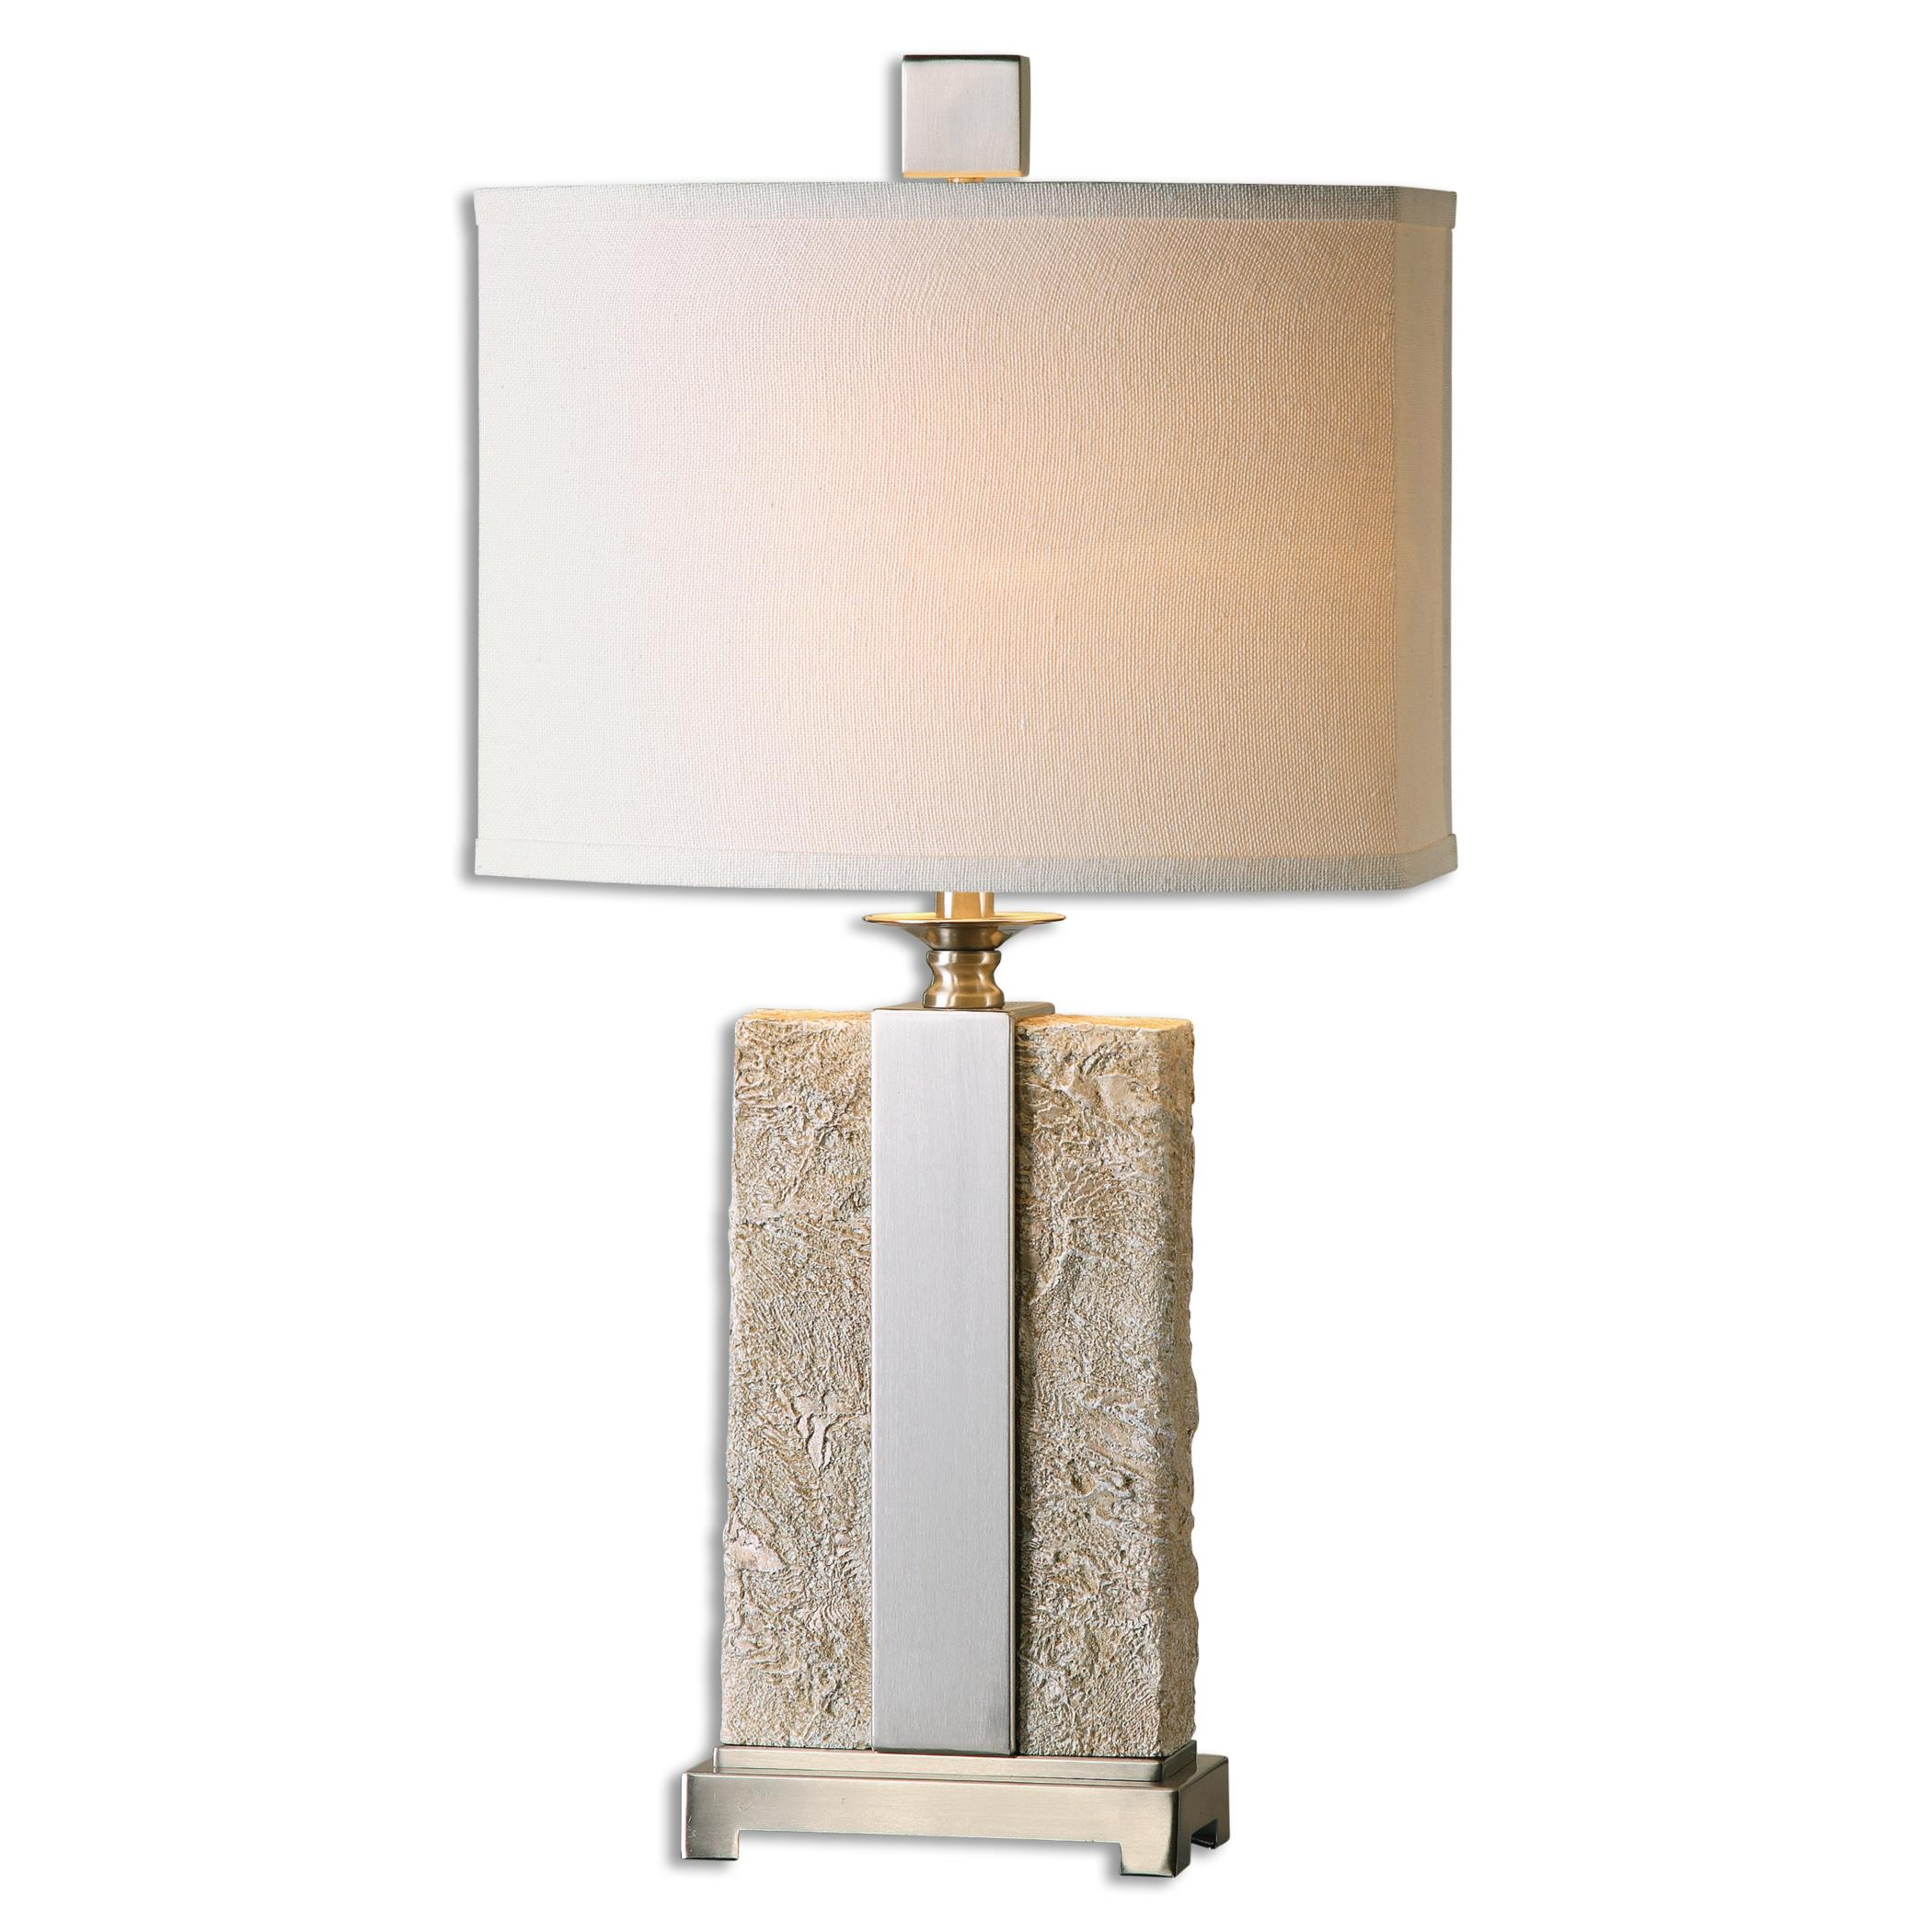 Bonea Stone Ivory Table Lamp